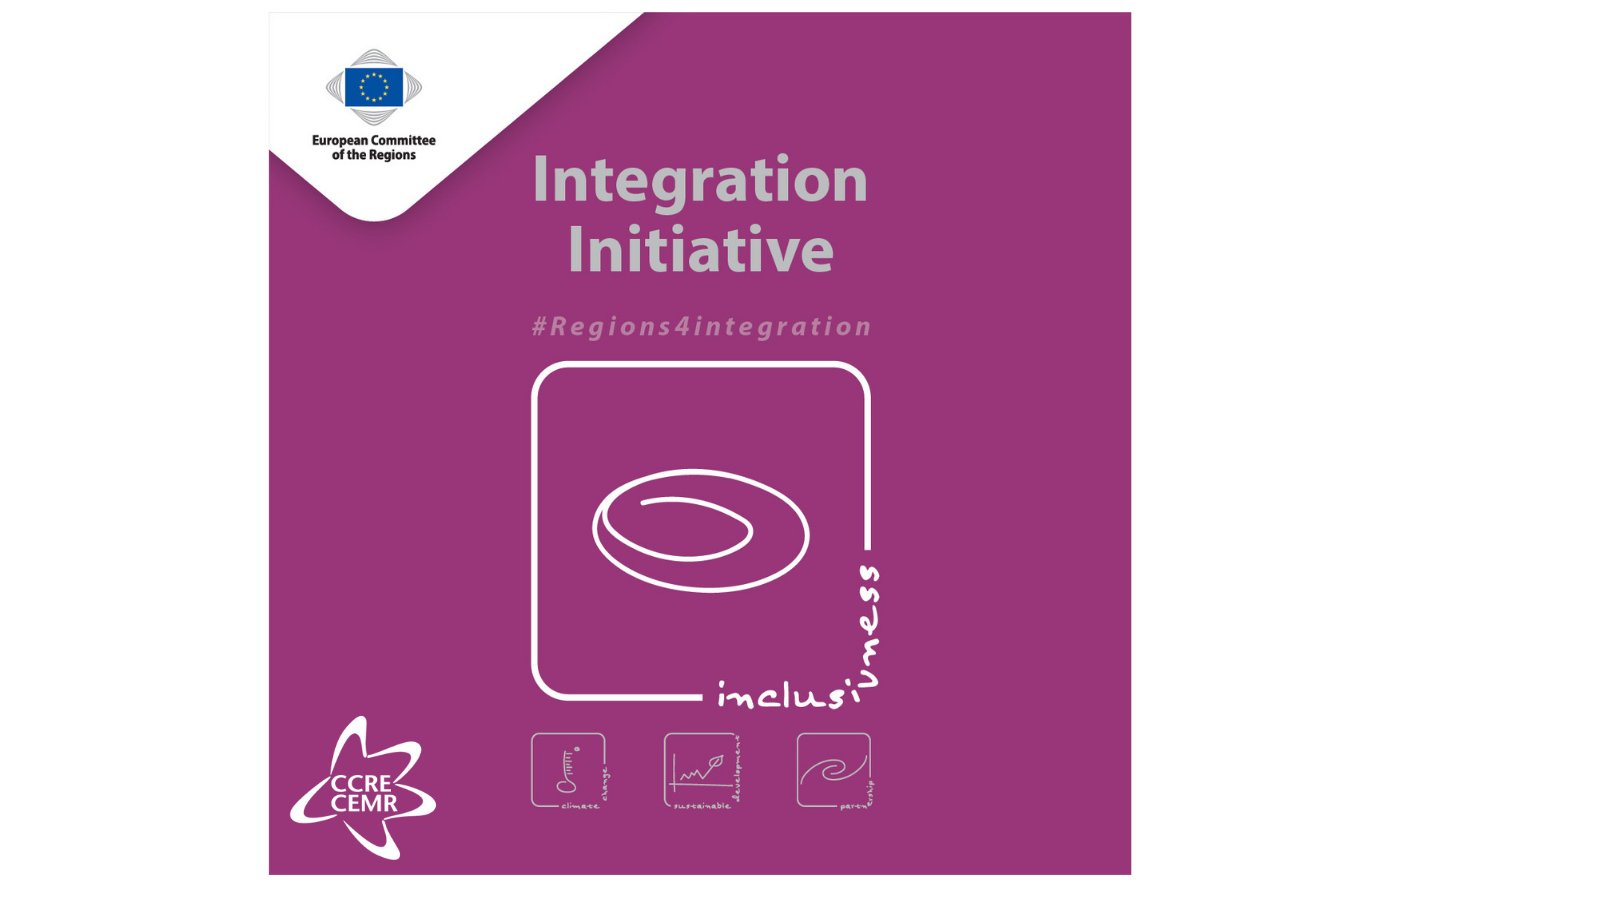 Integration initiative ccre